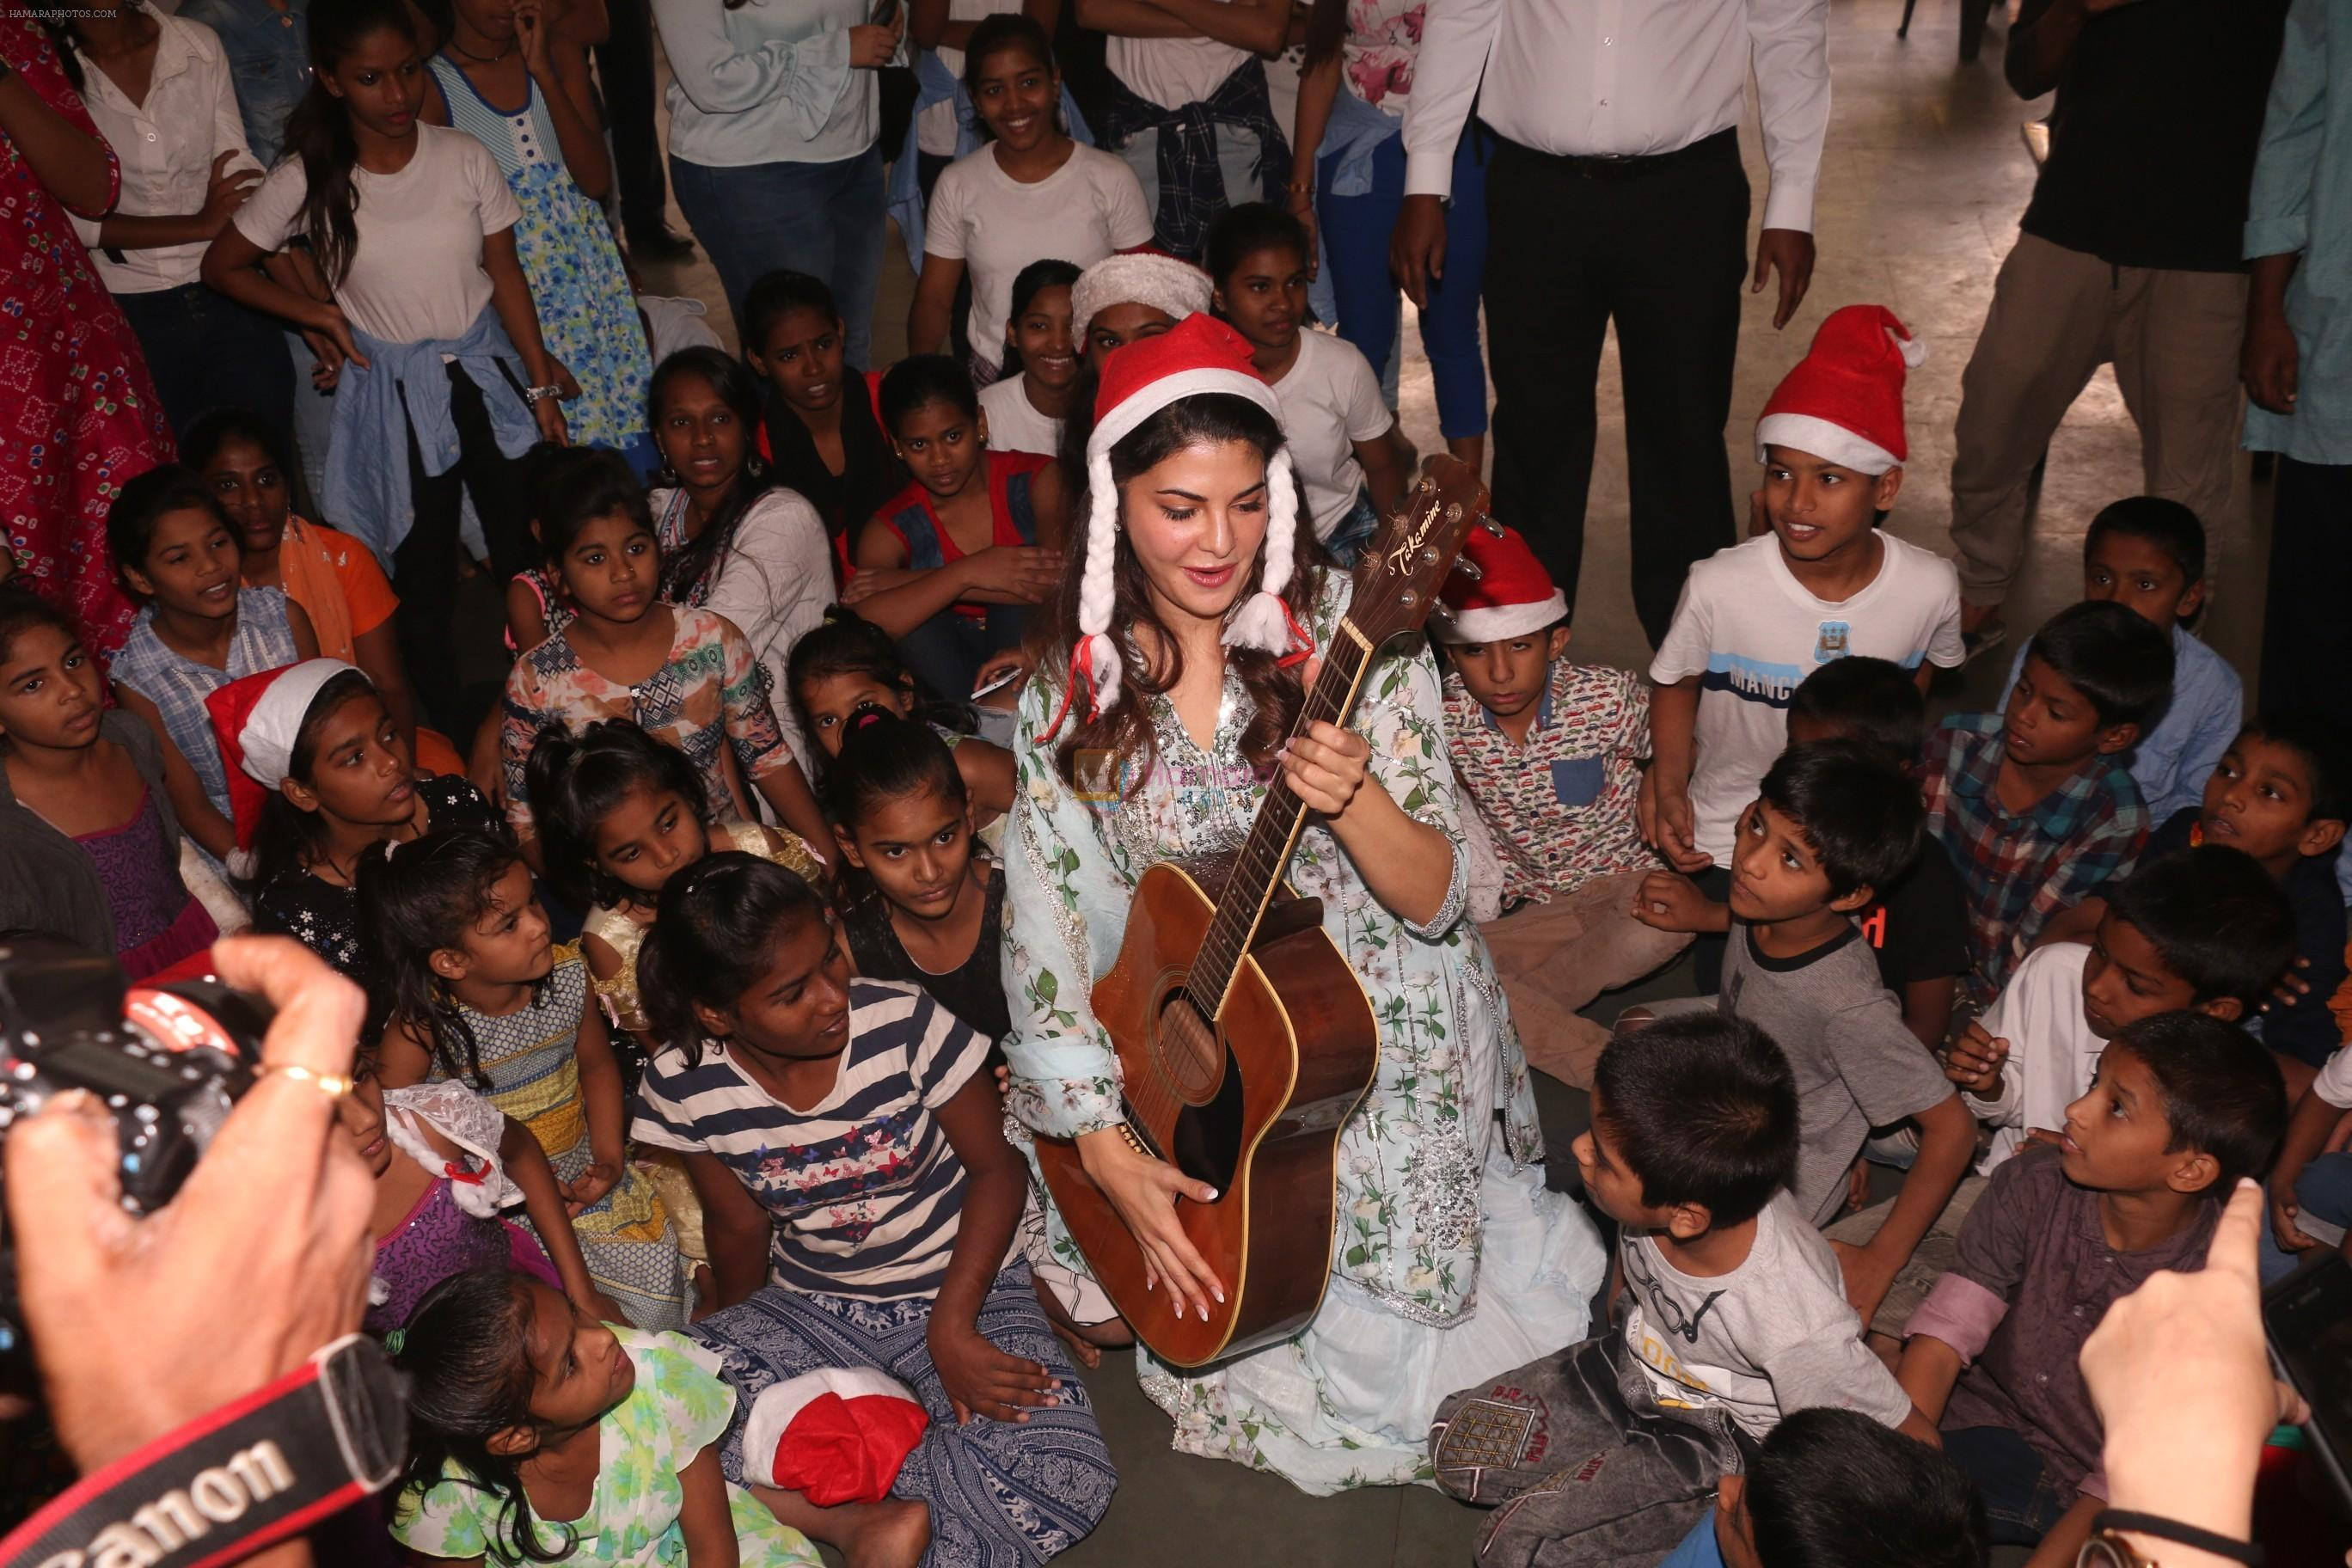 Jacqueline Fernandez celebrates Christmas with underprivileged children at bandra on 25th Dec 2018